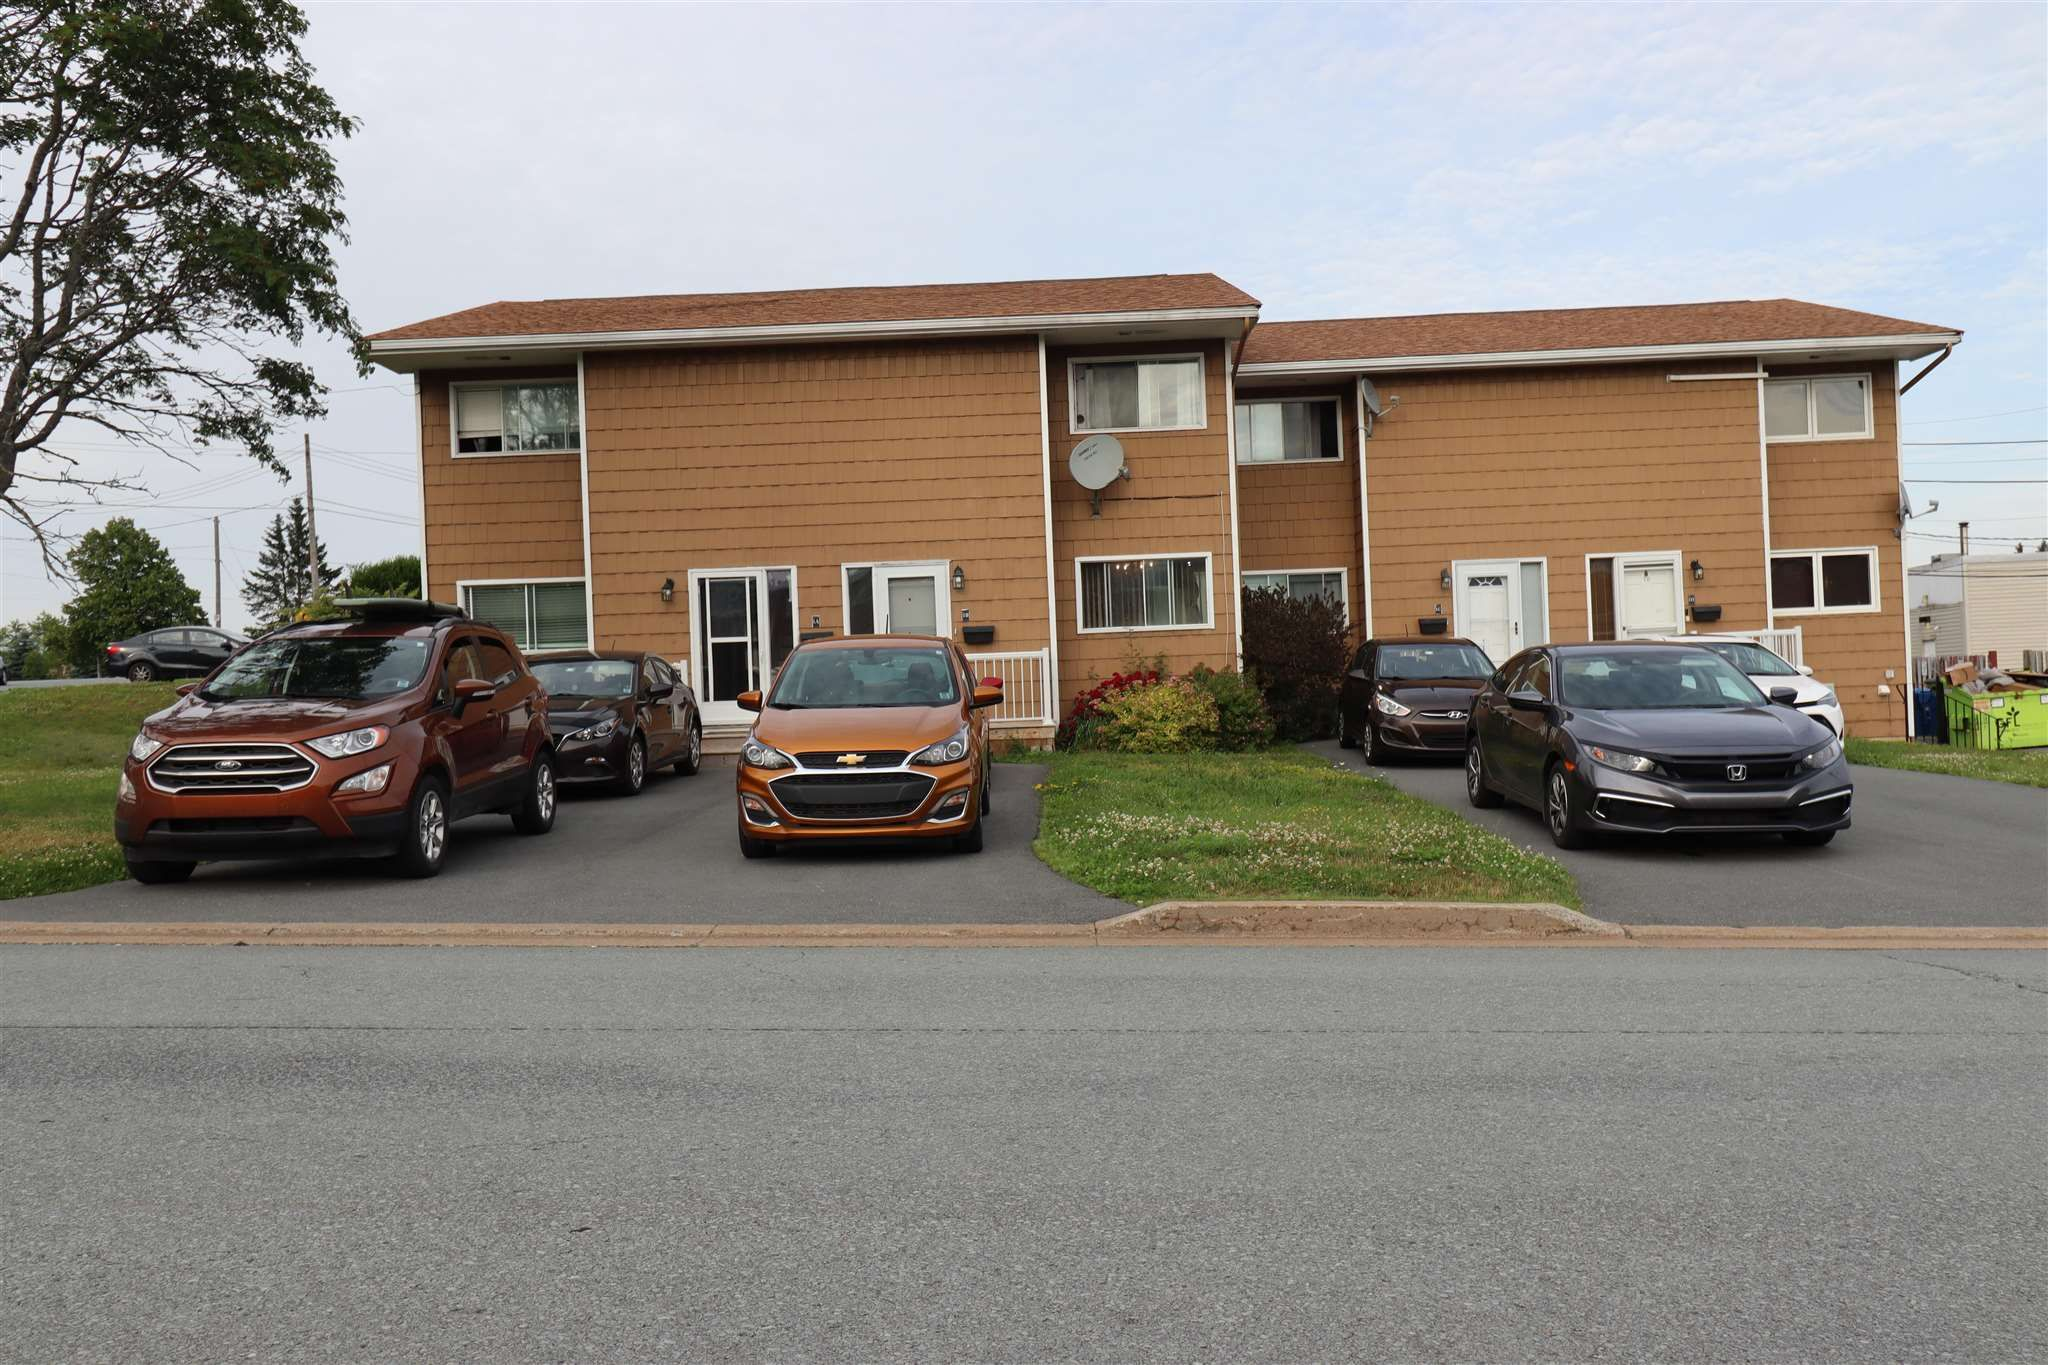 Main Photo: 1 B Perron in Cole Harbour: 15-Forest Hills Residential for sale (Halifax-Dartmouth)  : MLS®# 202118571